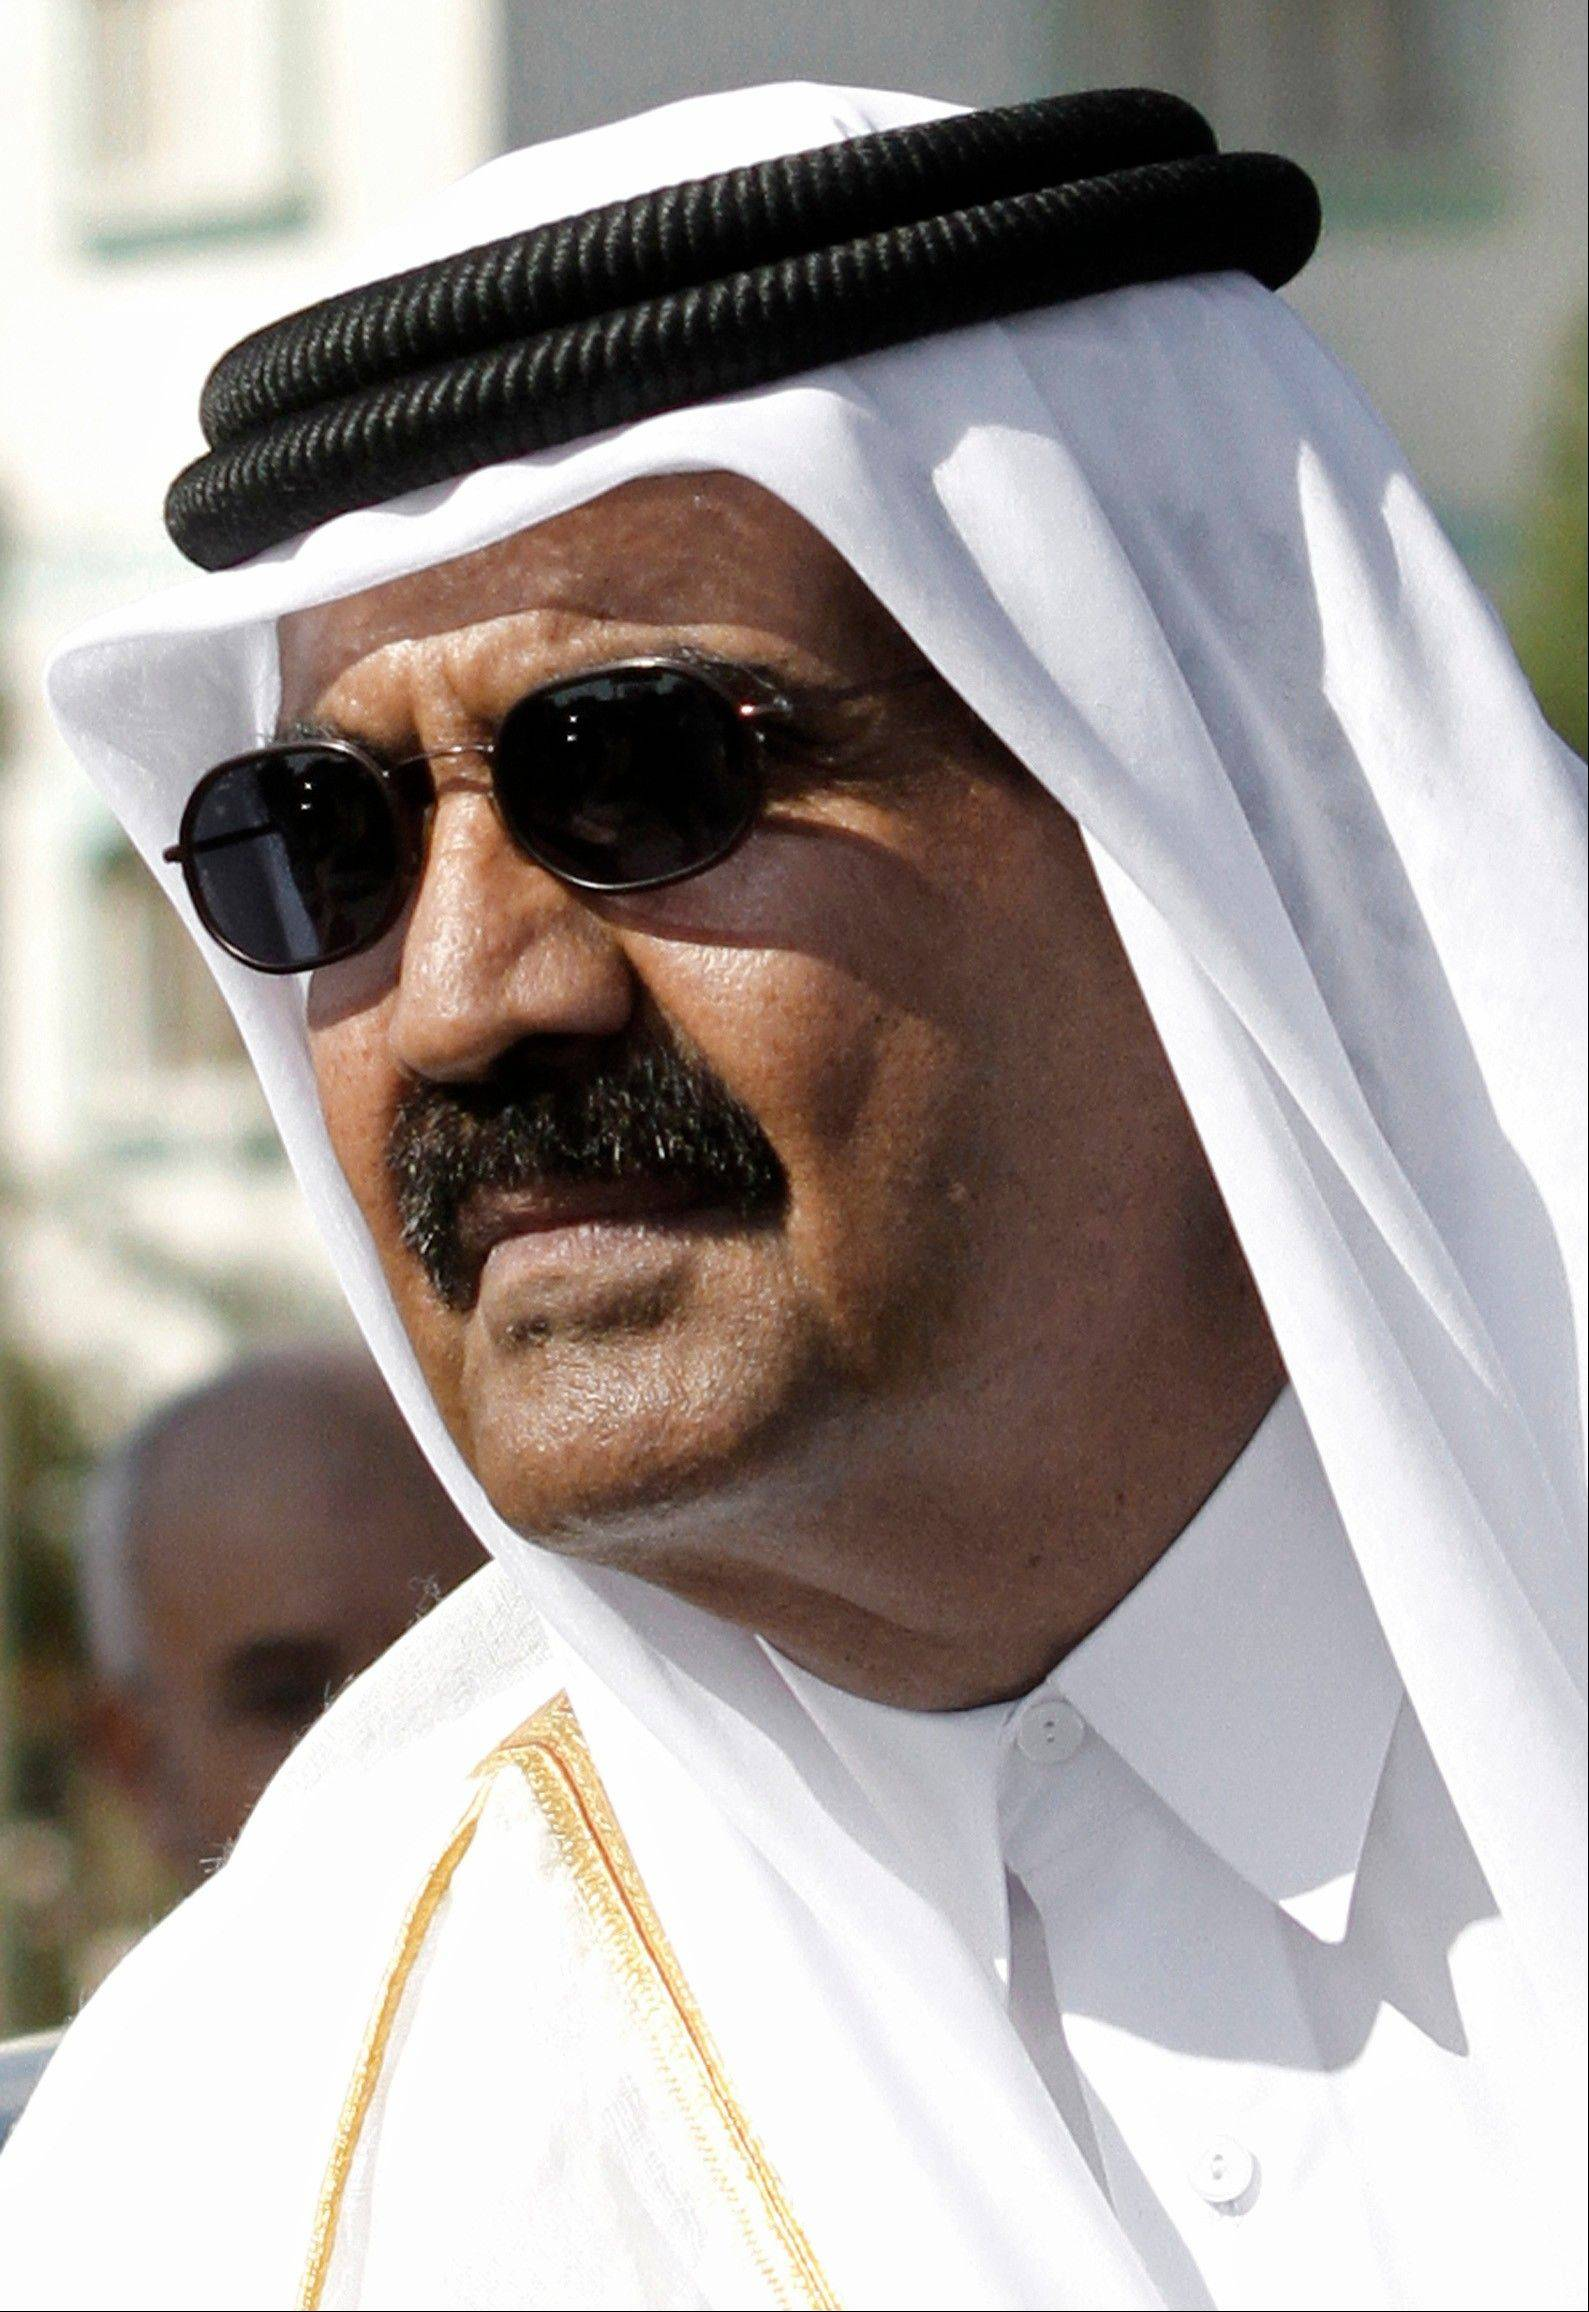 Emir of Qatar Sheikh Hamad bin Khalifa al-Thani arrives for cornerstone laying ceremony of a Qatari funded rehabilitation center in Gaza City, Tuesday, Oct. 23, 2012. The emir of Qatar received a hero�s welcome in Gaza on Tuesday, becoming the first head of state to visit the Palestinian territory since the Islamist militant Hamas seized control there in 2007.